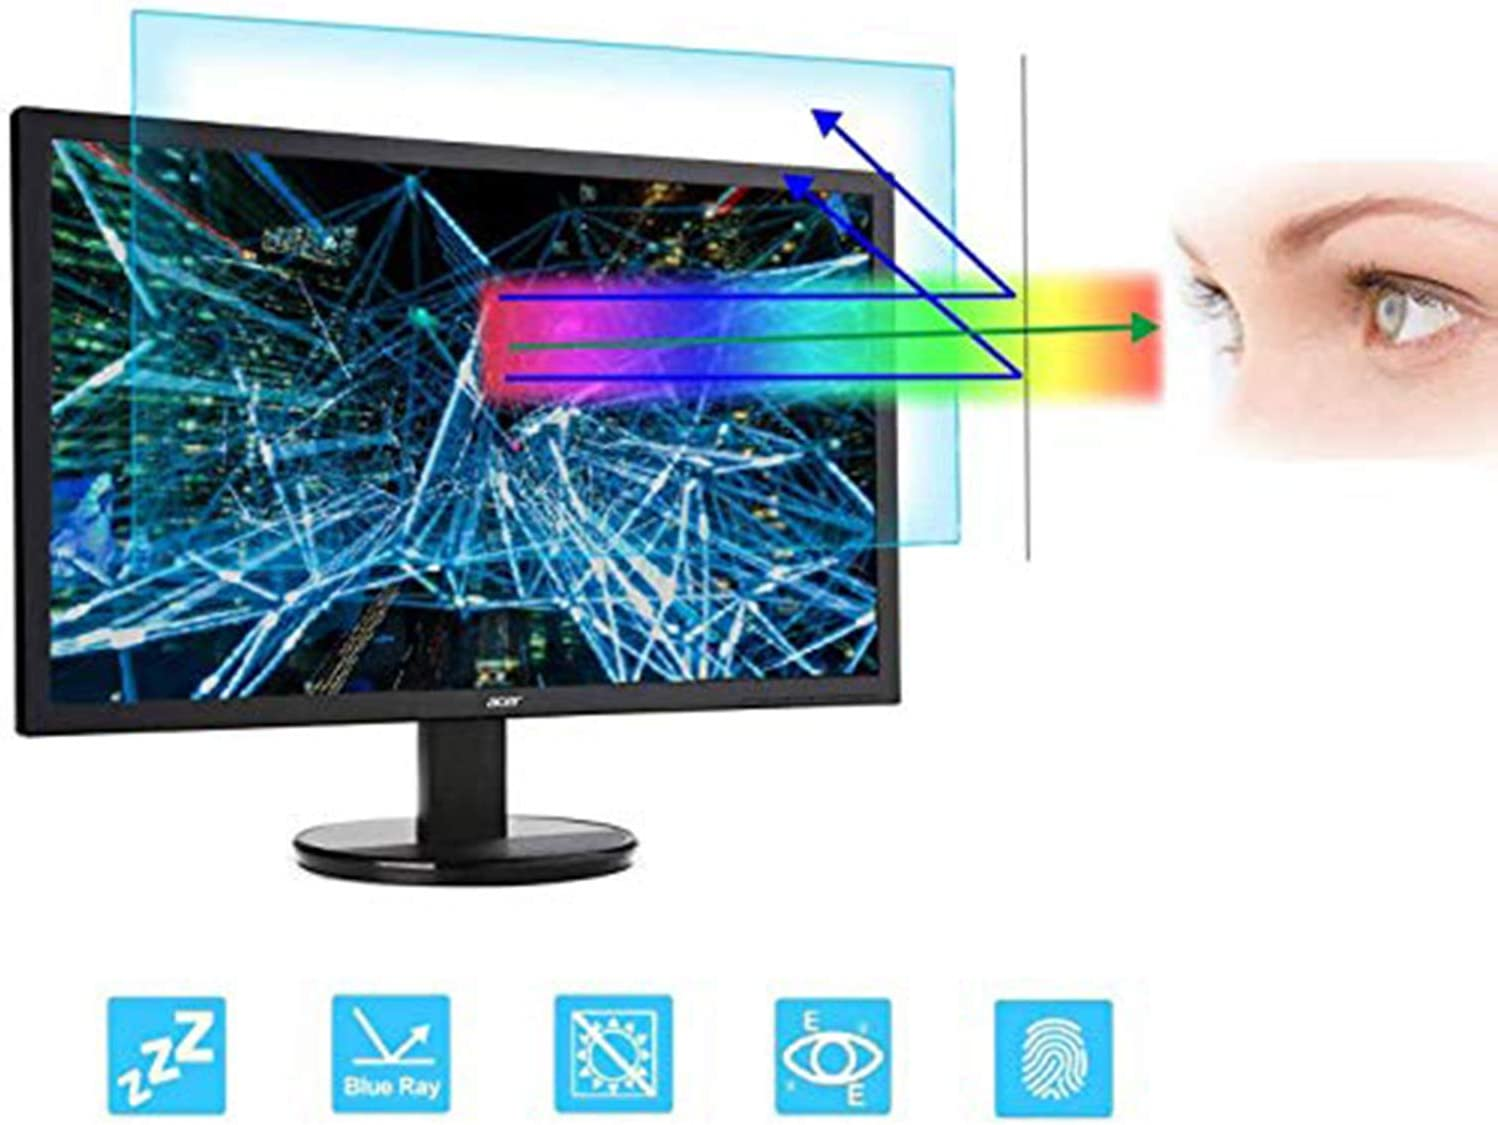 "23 Inch Monitor Screen Protector -Blue Light Filter, Eye Protection Blue Light Blocking Anti Glare Screen Protector for Diagonal 23"" 16:9 Widescreen Desktop Monitor (Size: 20"" Width x 11.3"" Height)"